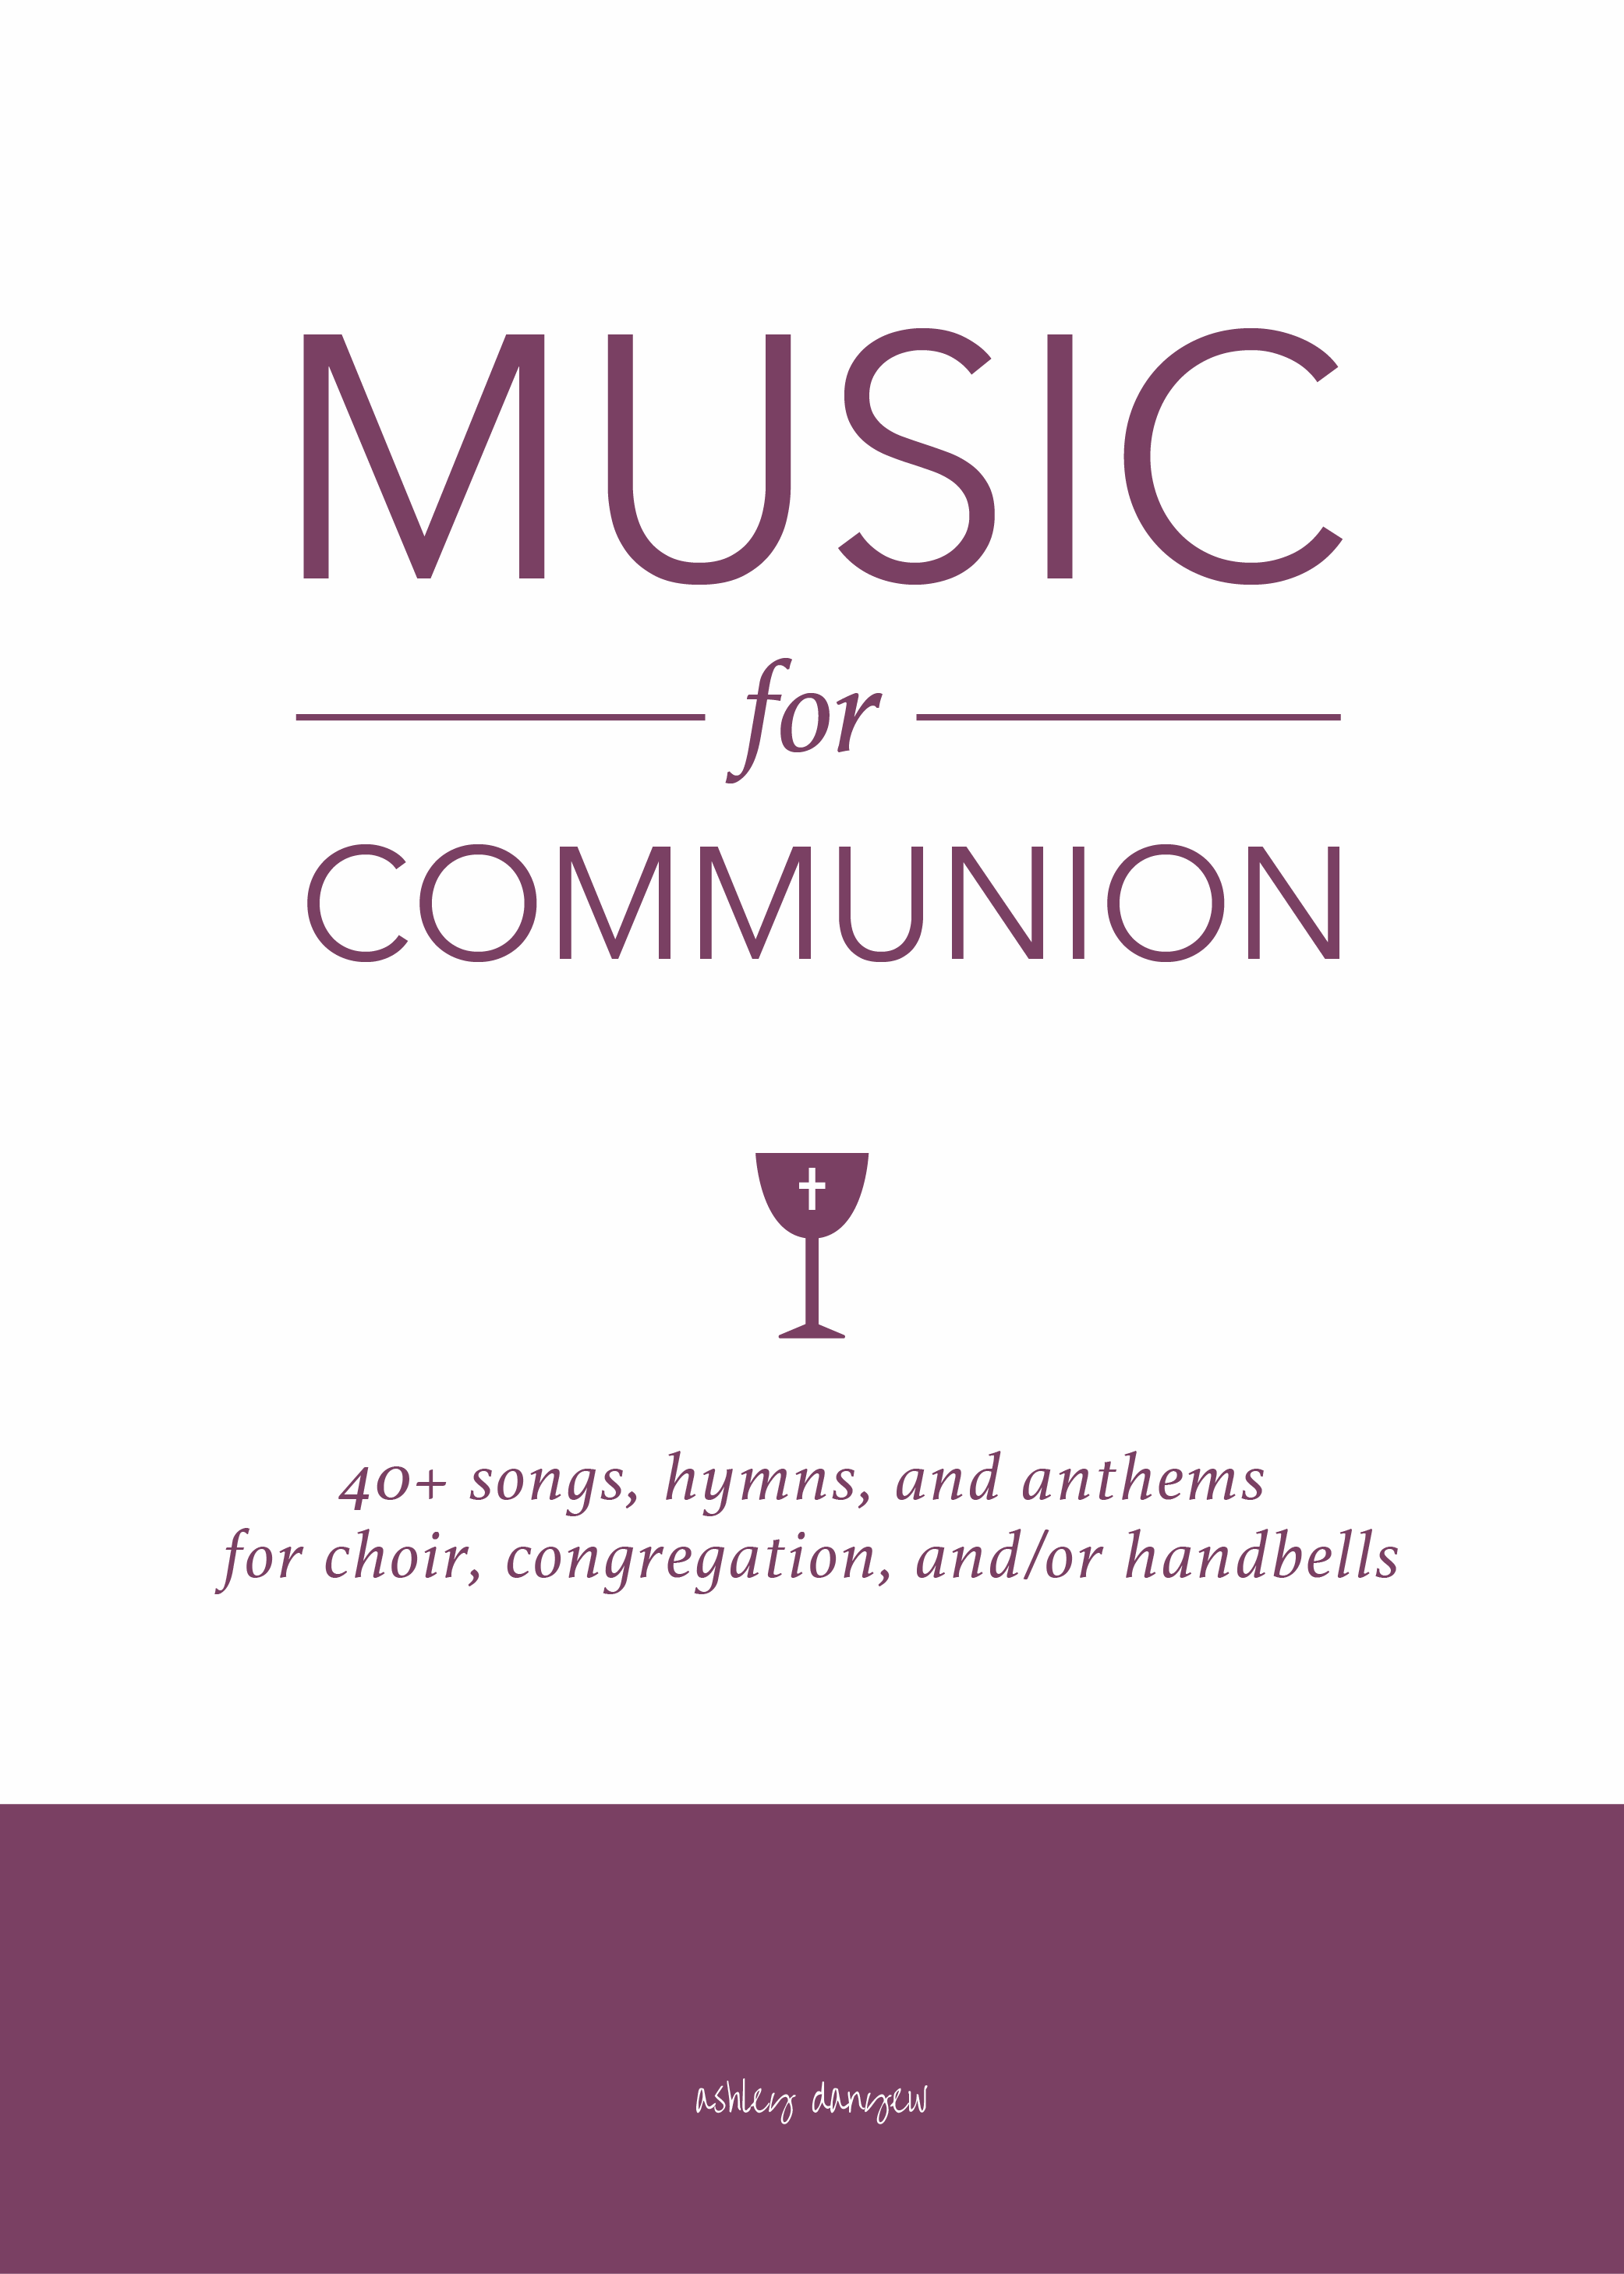 Copy of Music for Communion: 40+ Songs, Hymns, and Anthems